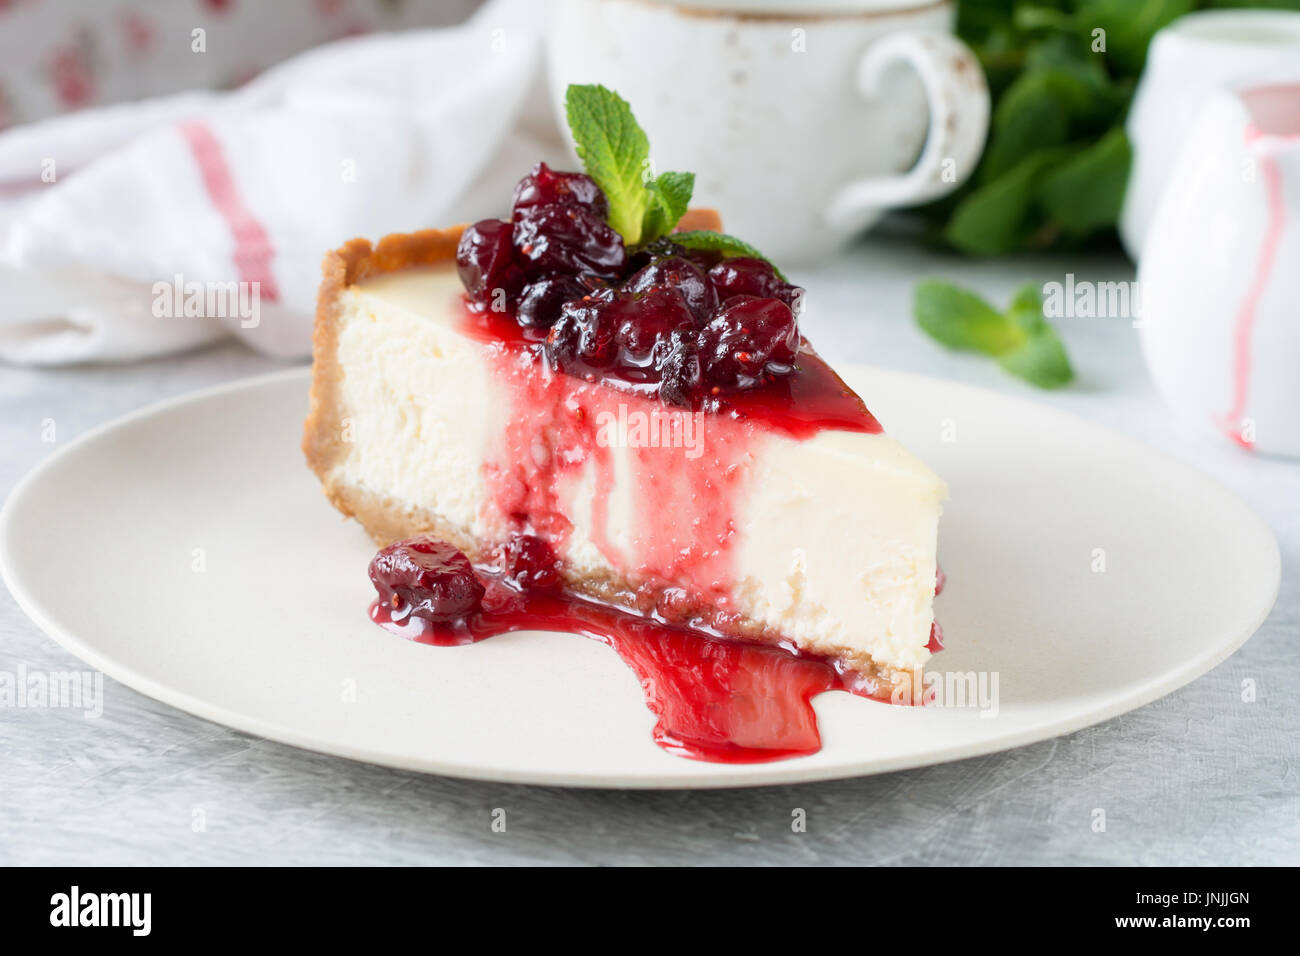 Slice of new york cheesecake with cherry sauce and mint leaf on top. - Stock Image